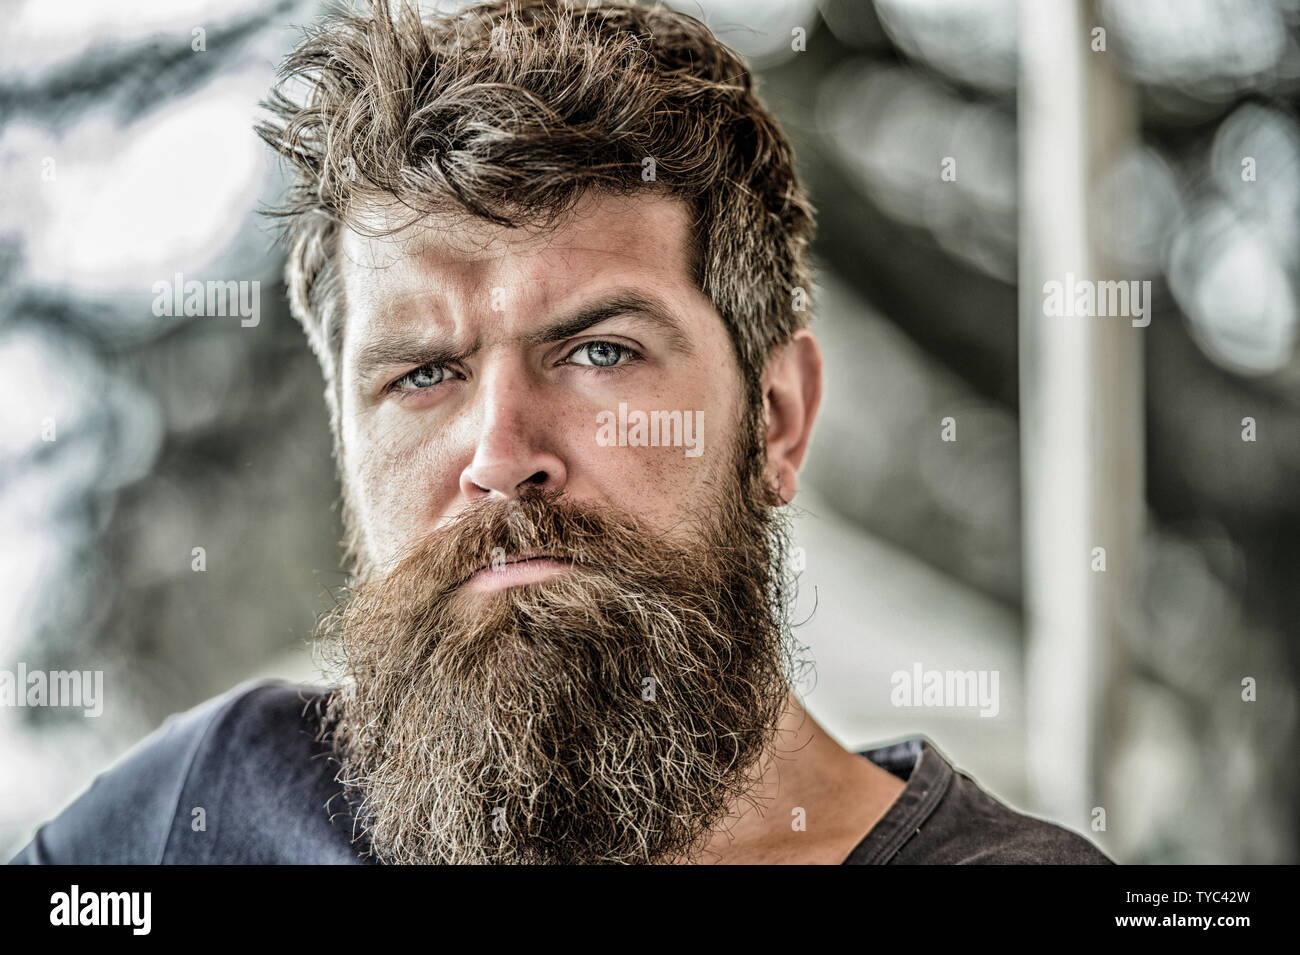 Man with beard and mustache thoughtful troubled. Thoughtful mood concept. Making important life choices. Making hard decision. Bearded man concentrated face. Hipster with beard thoughtful expression. - Stock Image